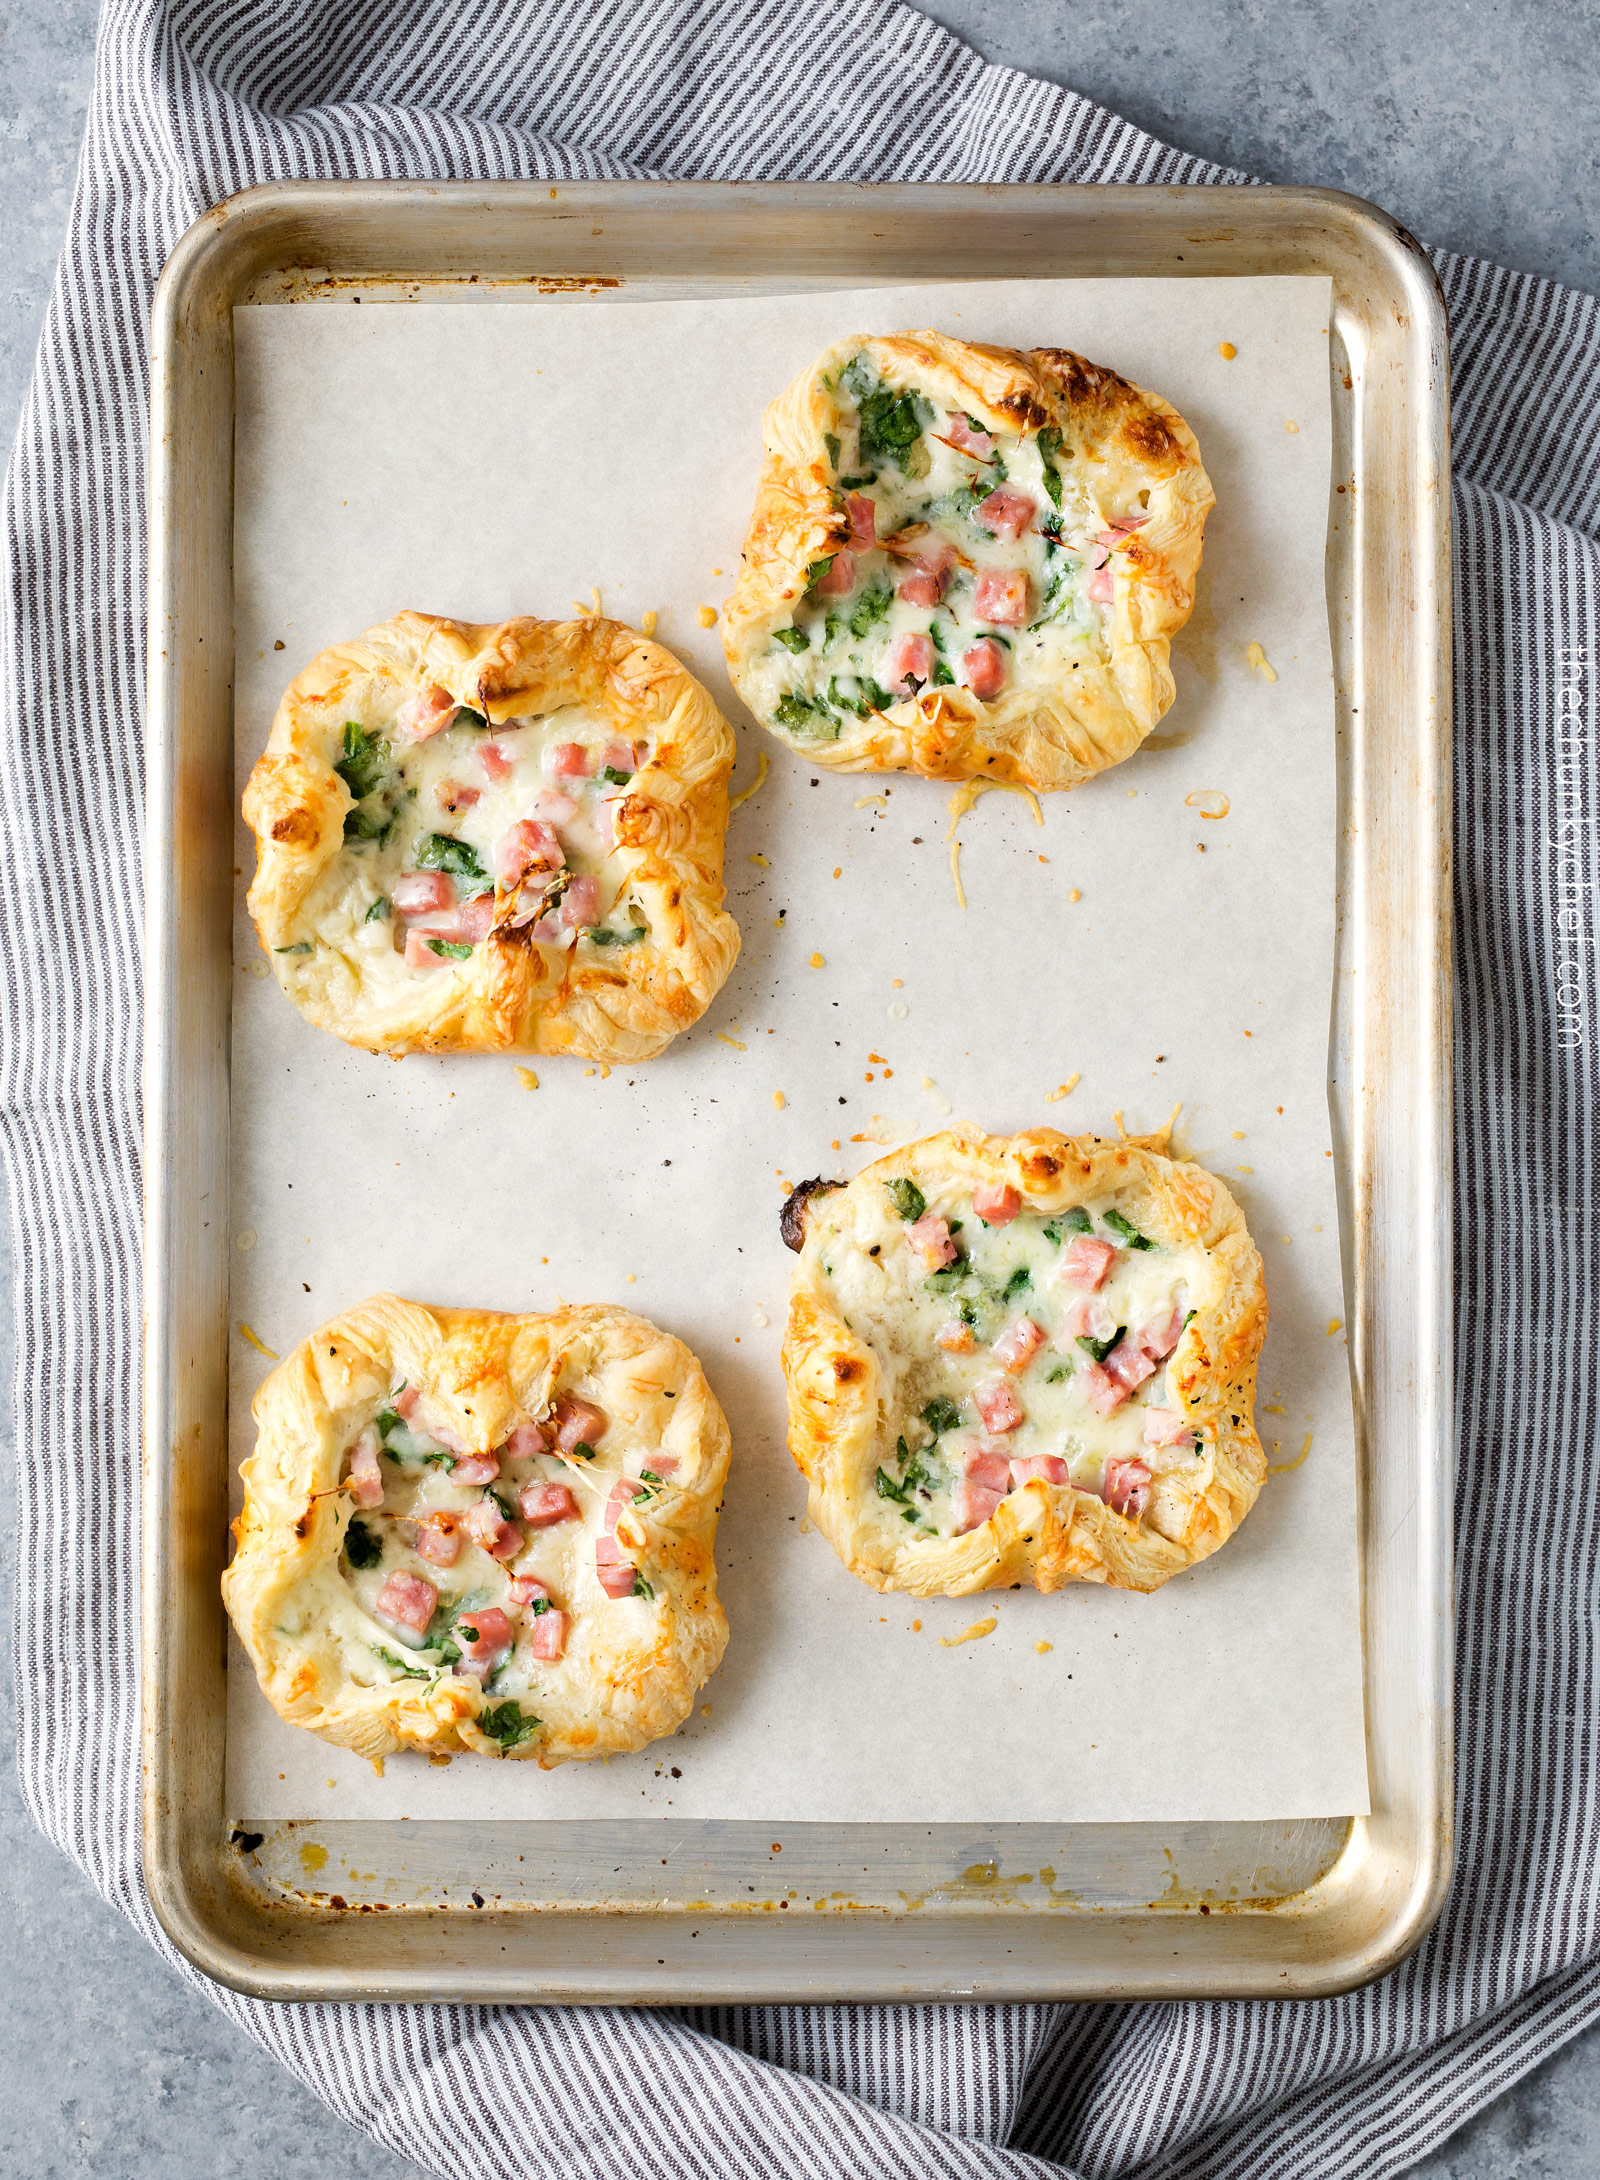 Ham and Cheese Spinach Puffs | Ready in just over 30 minutes, these spinach puffs are made with flaky puff pastry, wrapped around a creamy mixture of ham, gruyere cheese and fresh spinach. Perfect for using leftover ham! | http://thechunkychef.com